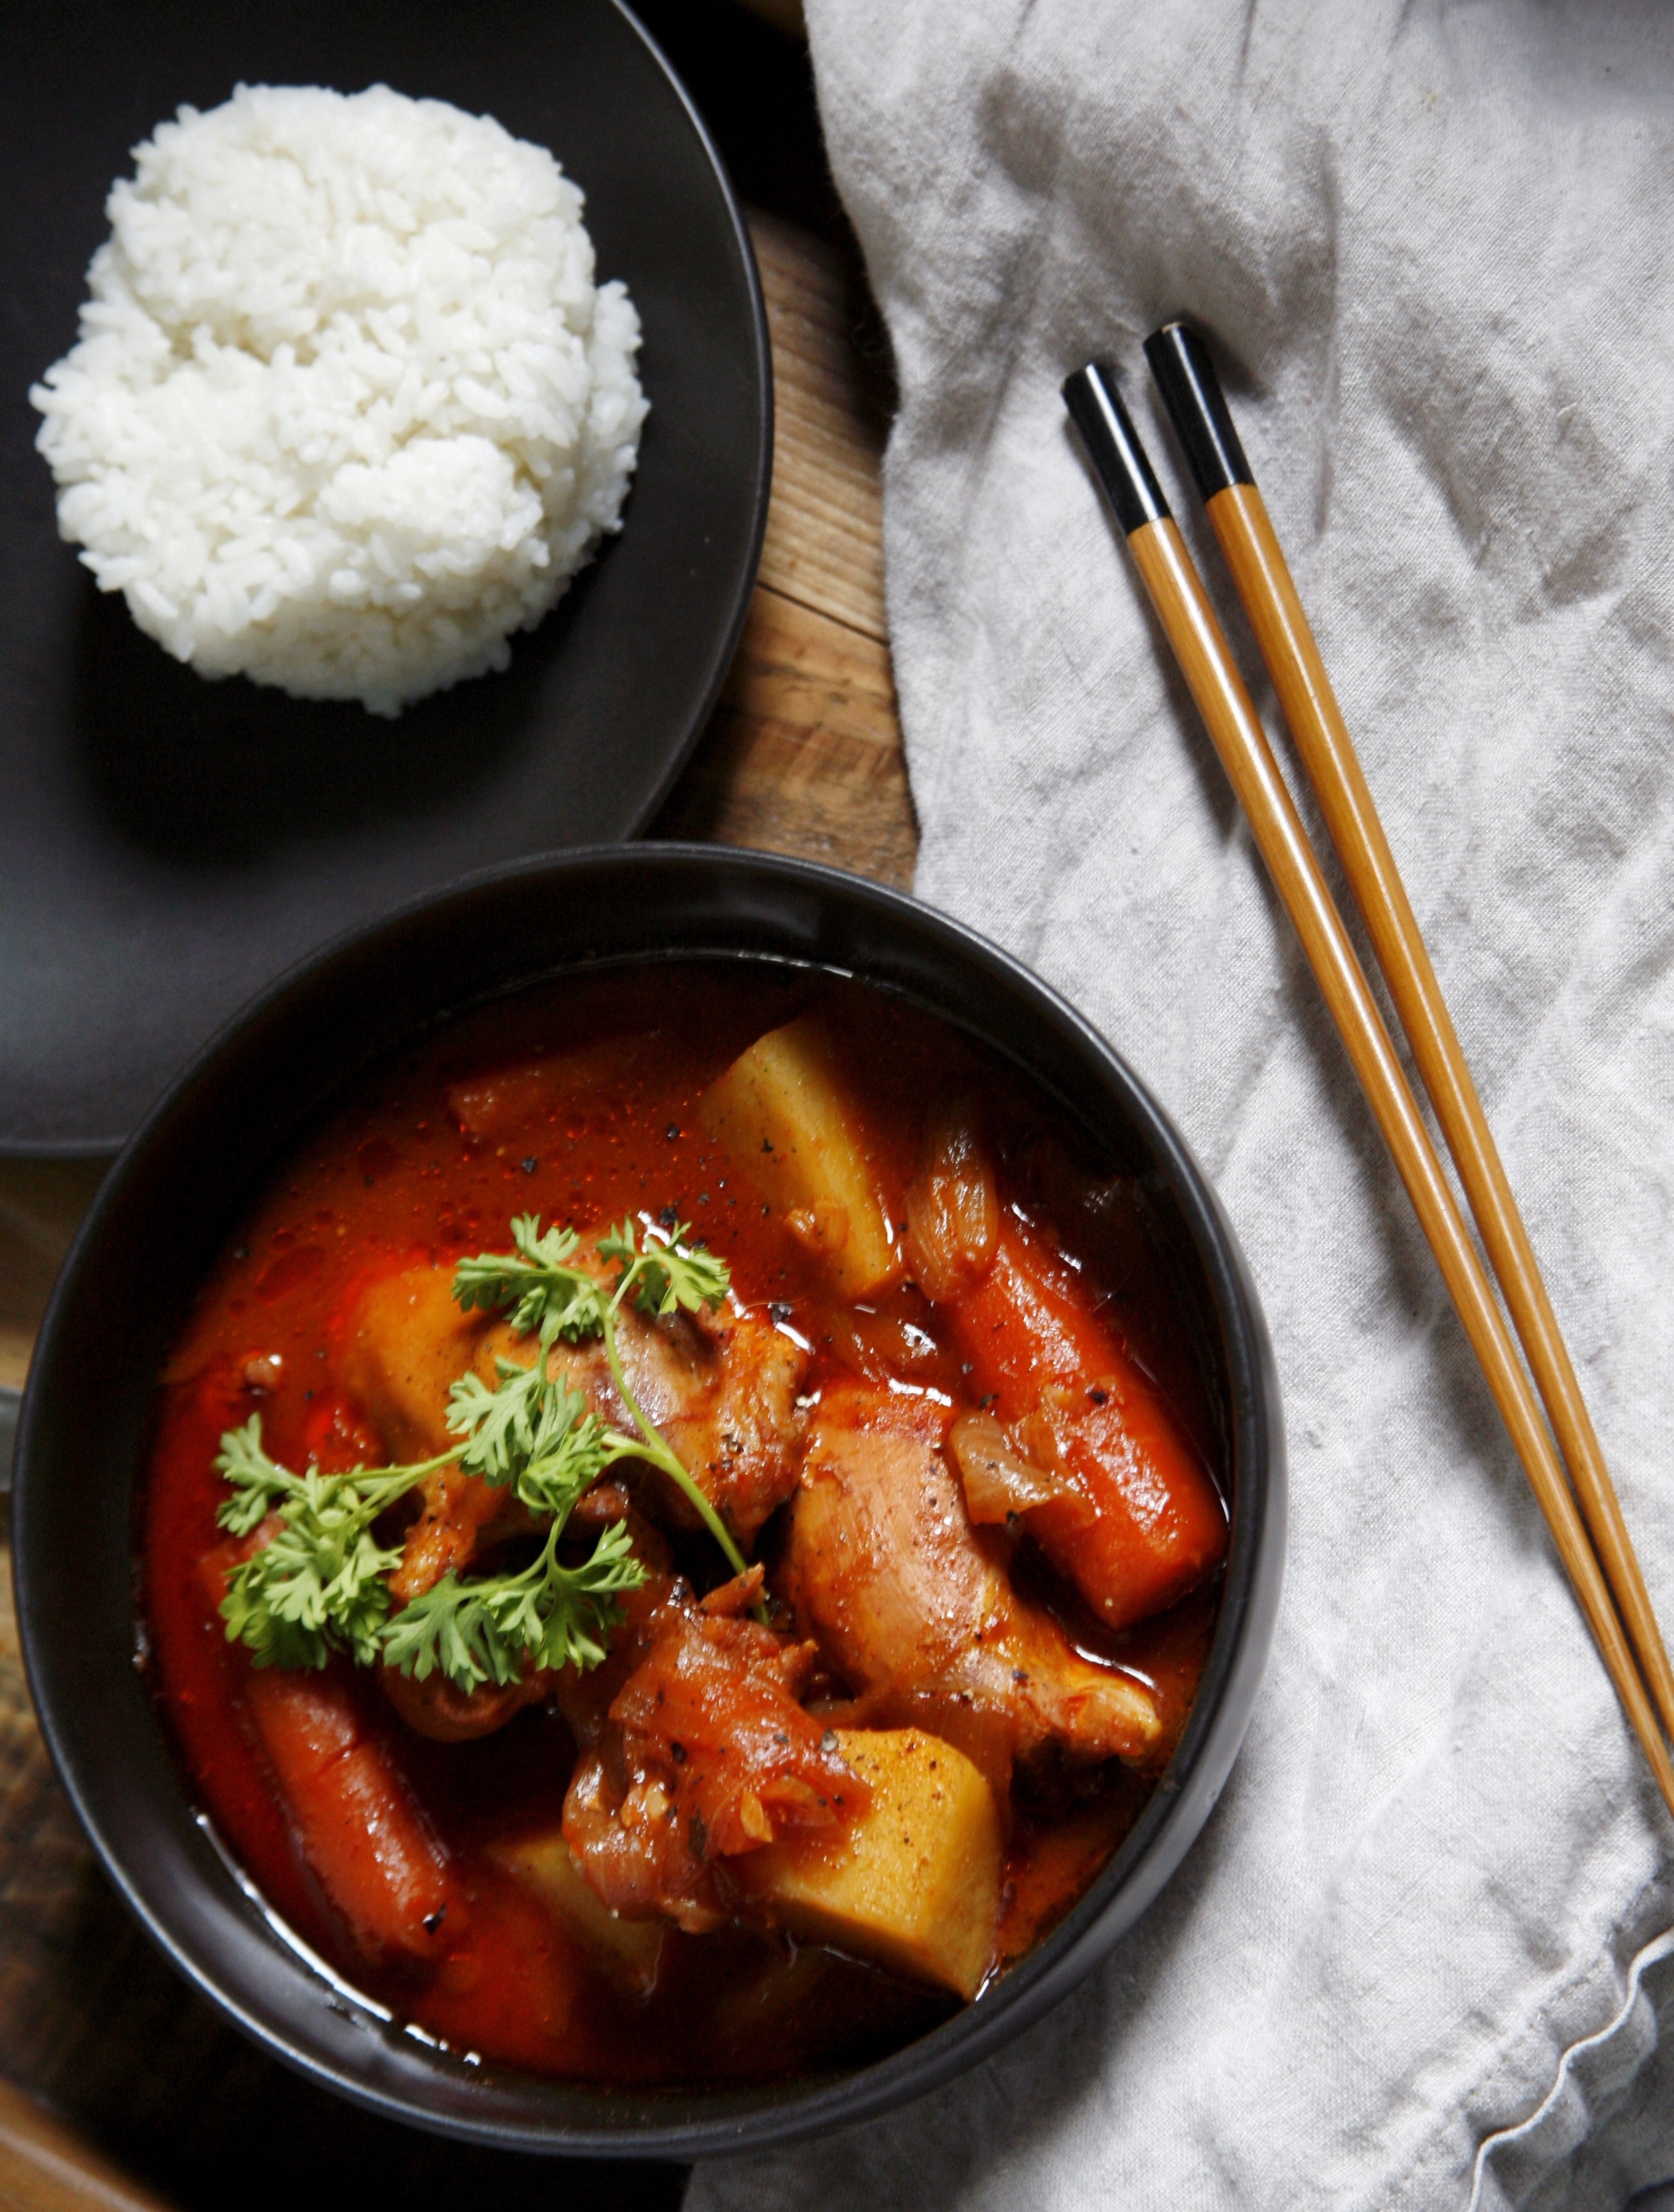 A hearty Korean chicken stew with rice.